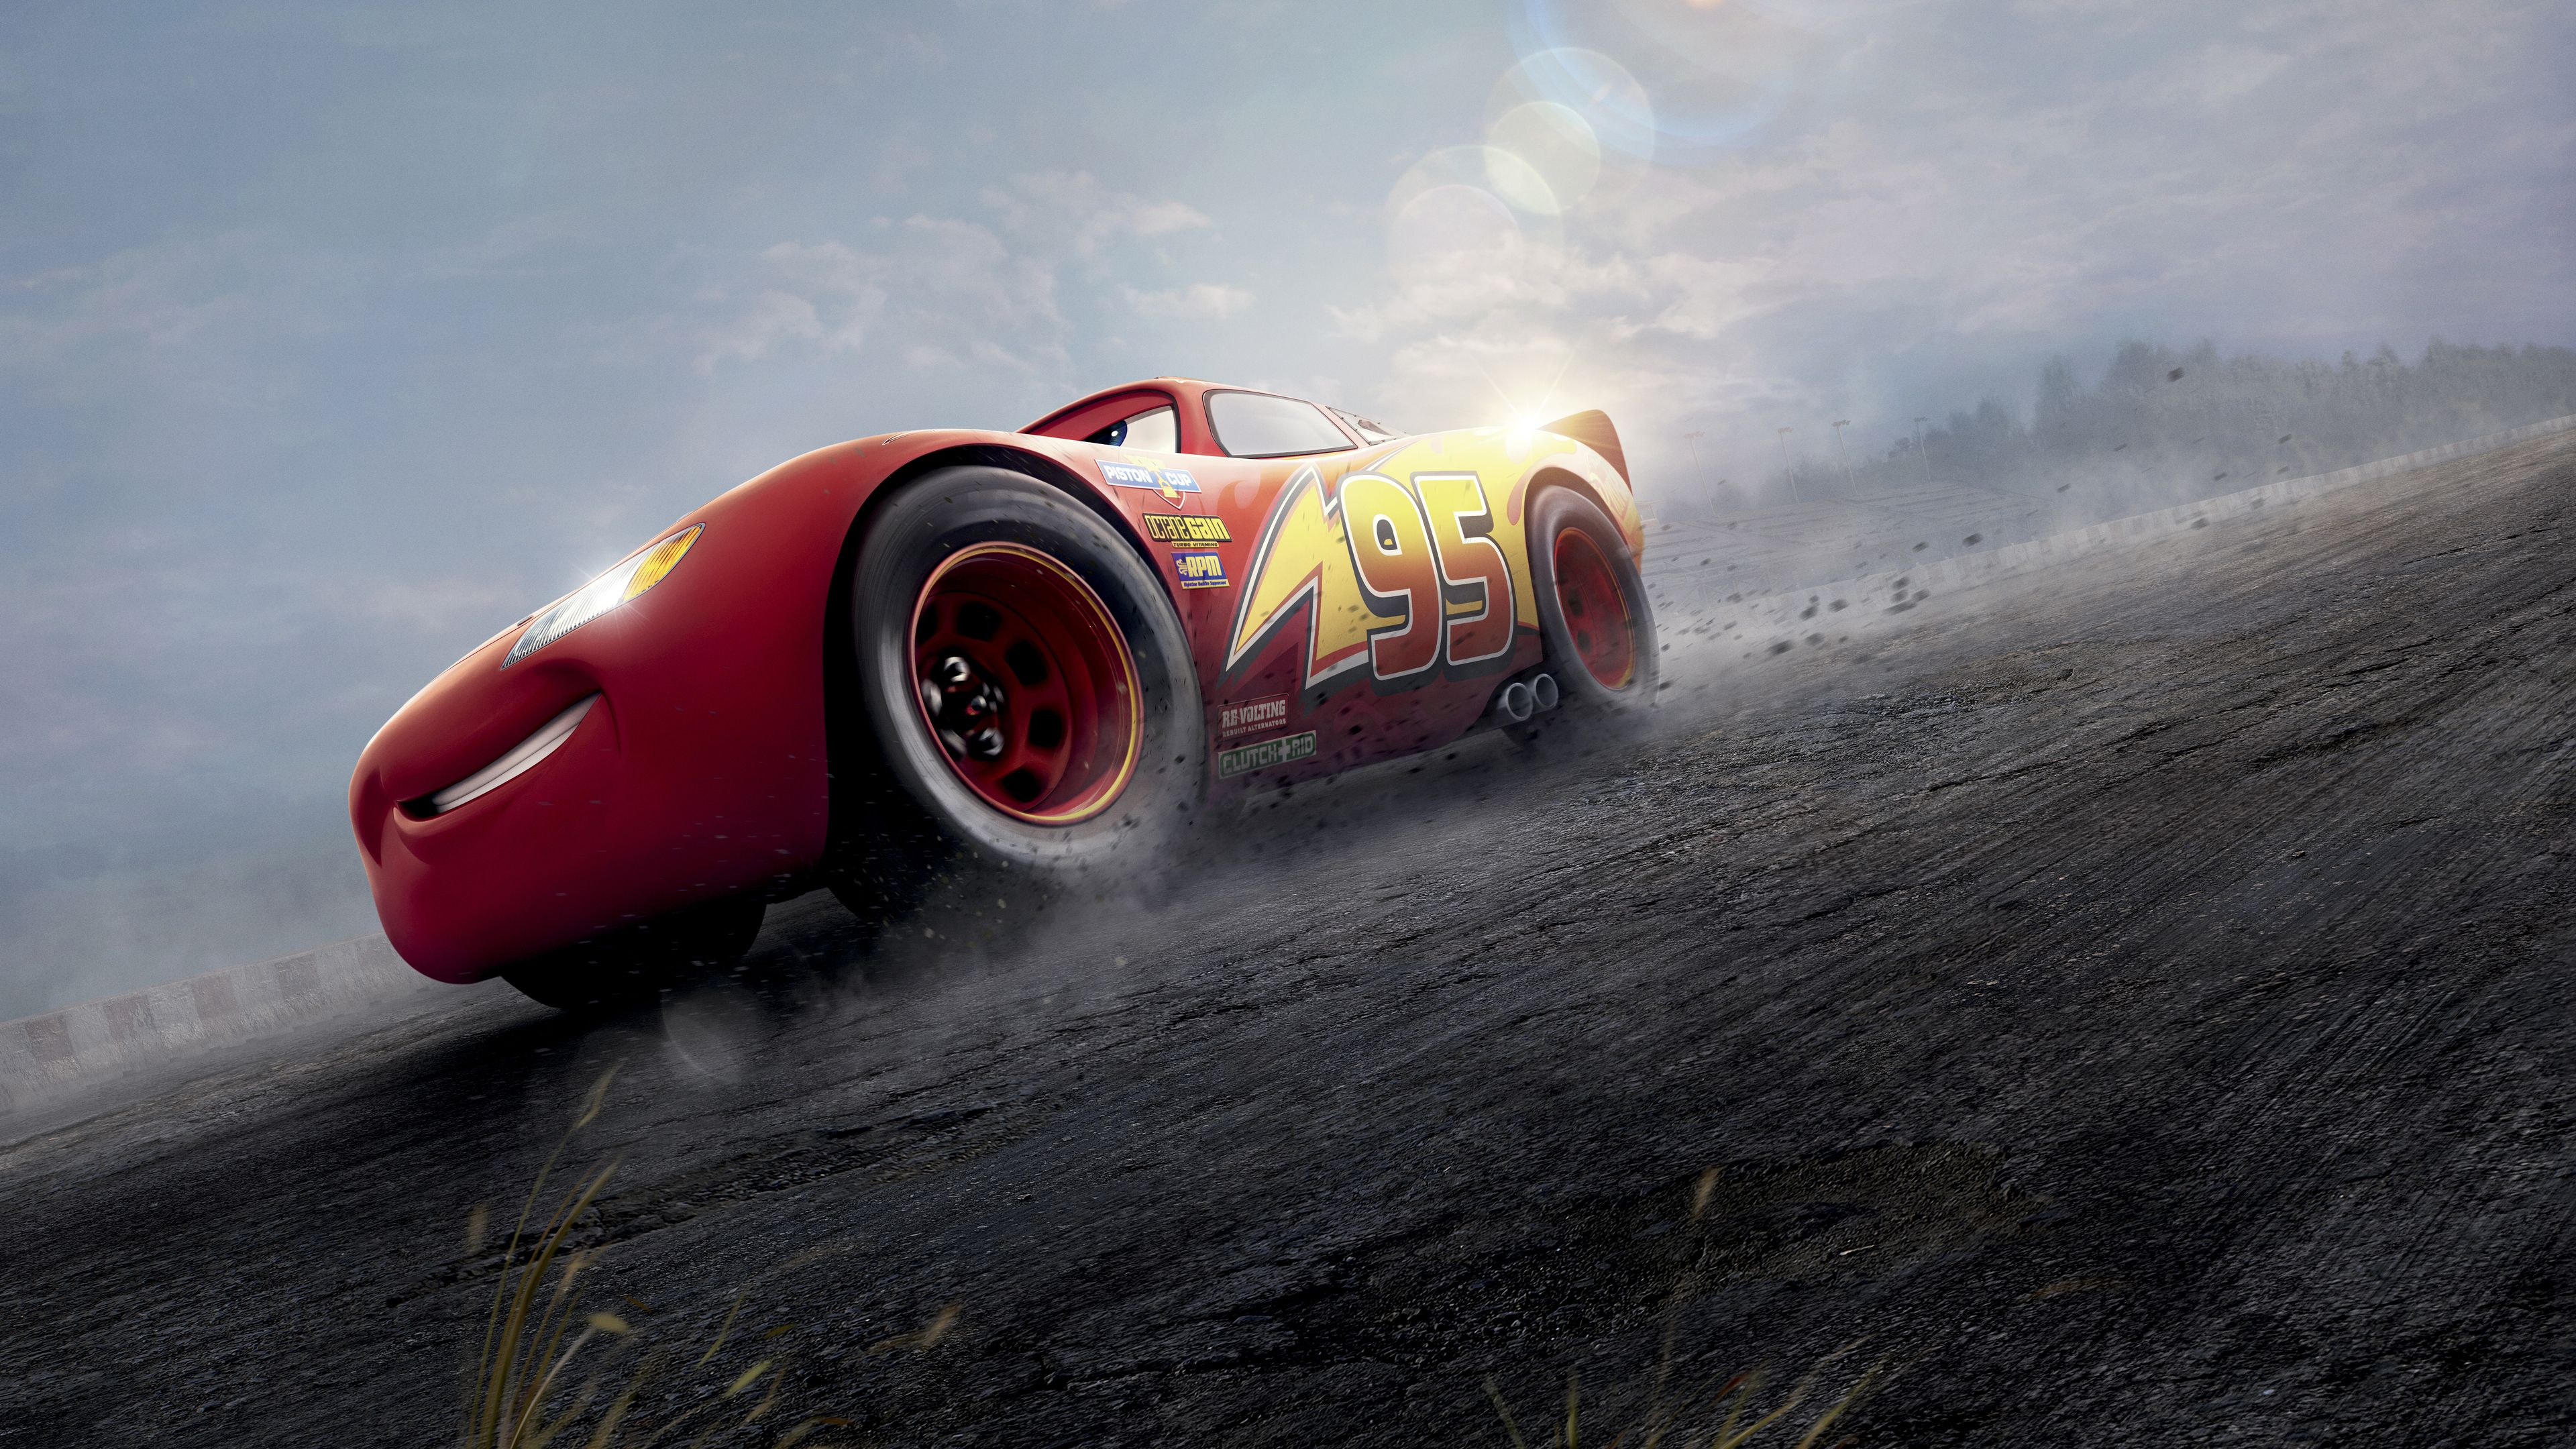 Cars 3 Red Lightning McQueen 4k movies wallpapers, hd